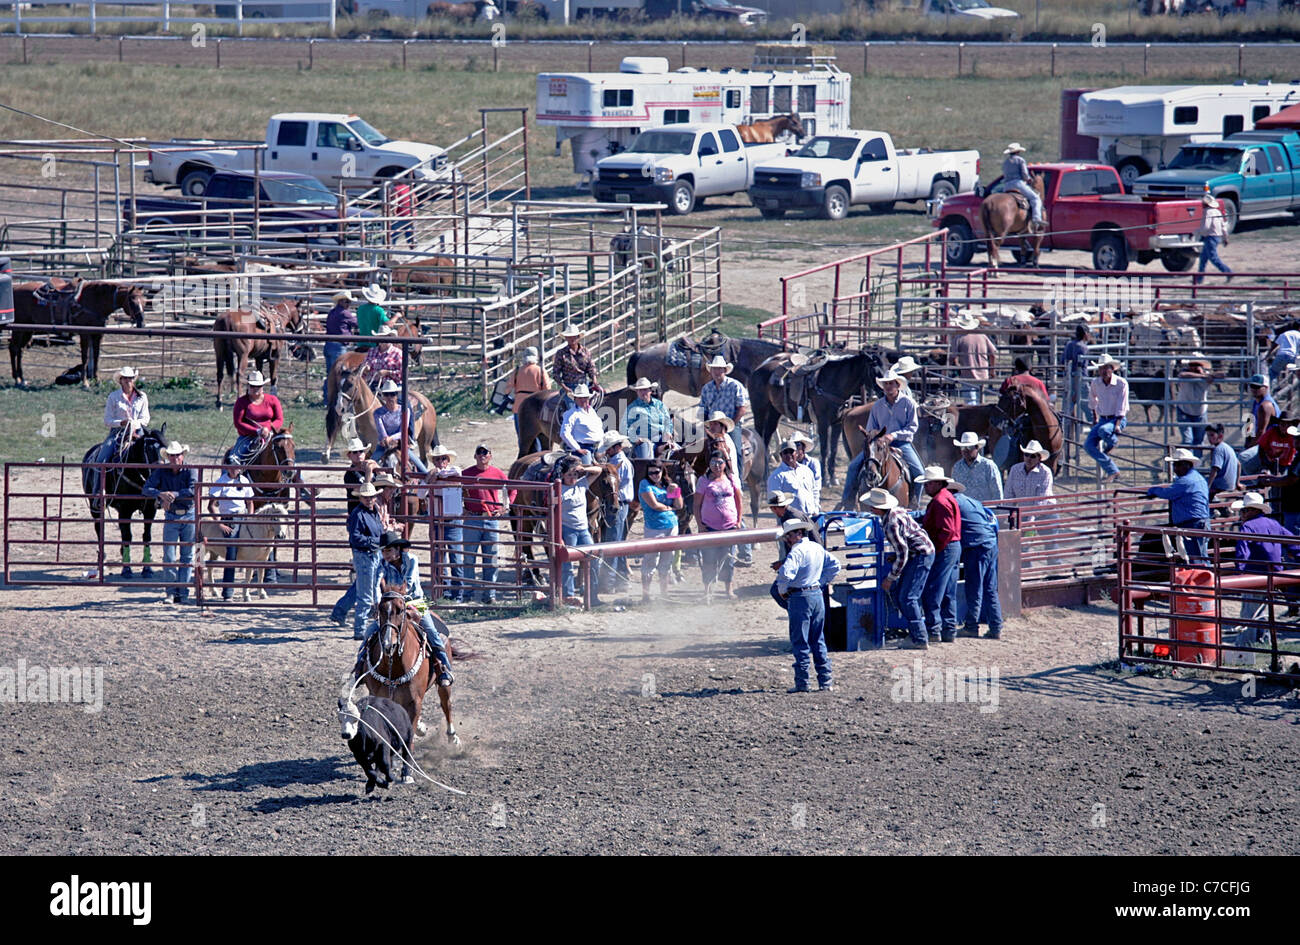 Woman competing in the calf breakaway event during the rodeo held at the Crow Agency reservation in Montana - Stock Image